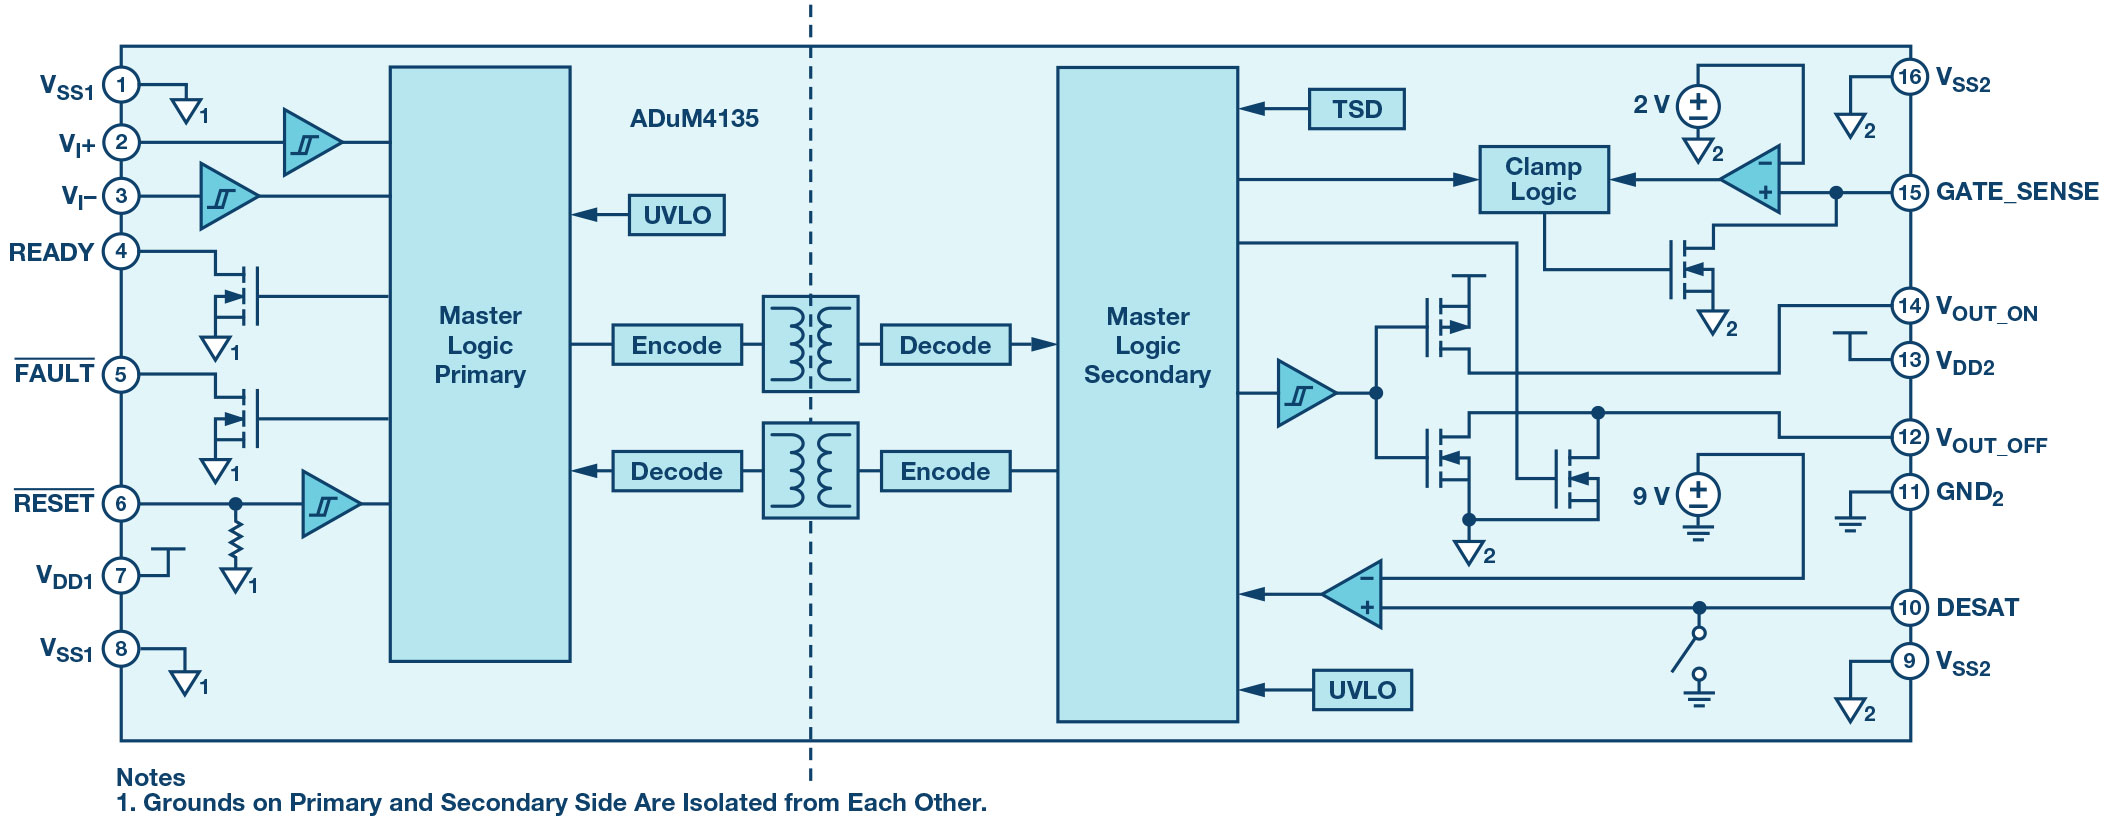 fault block diagram well pump motor wiring ic ecosystem for driving next-generation sic/gan power converters   analog devices